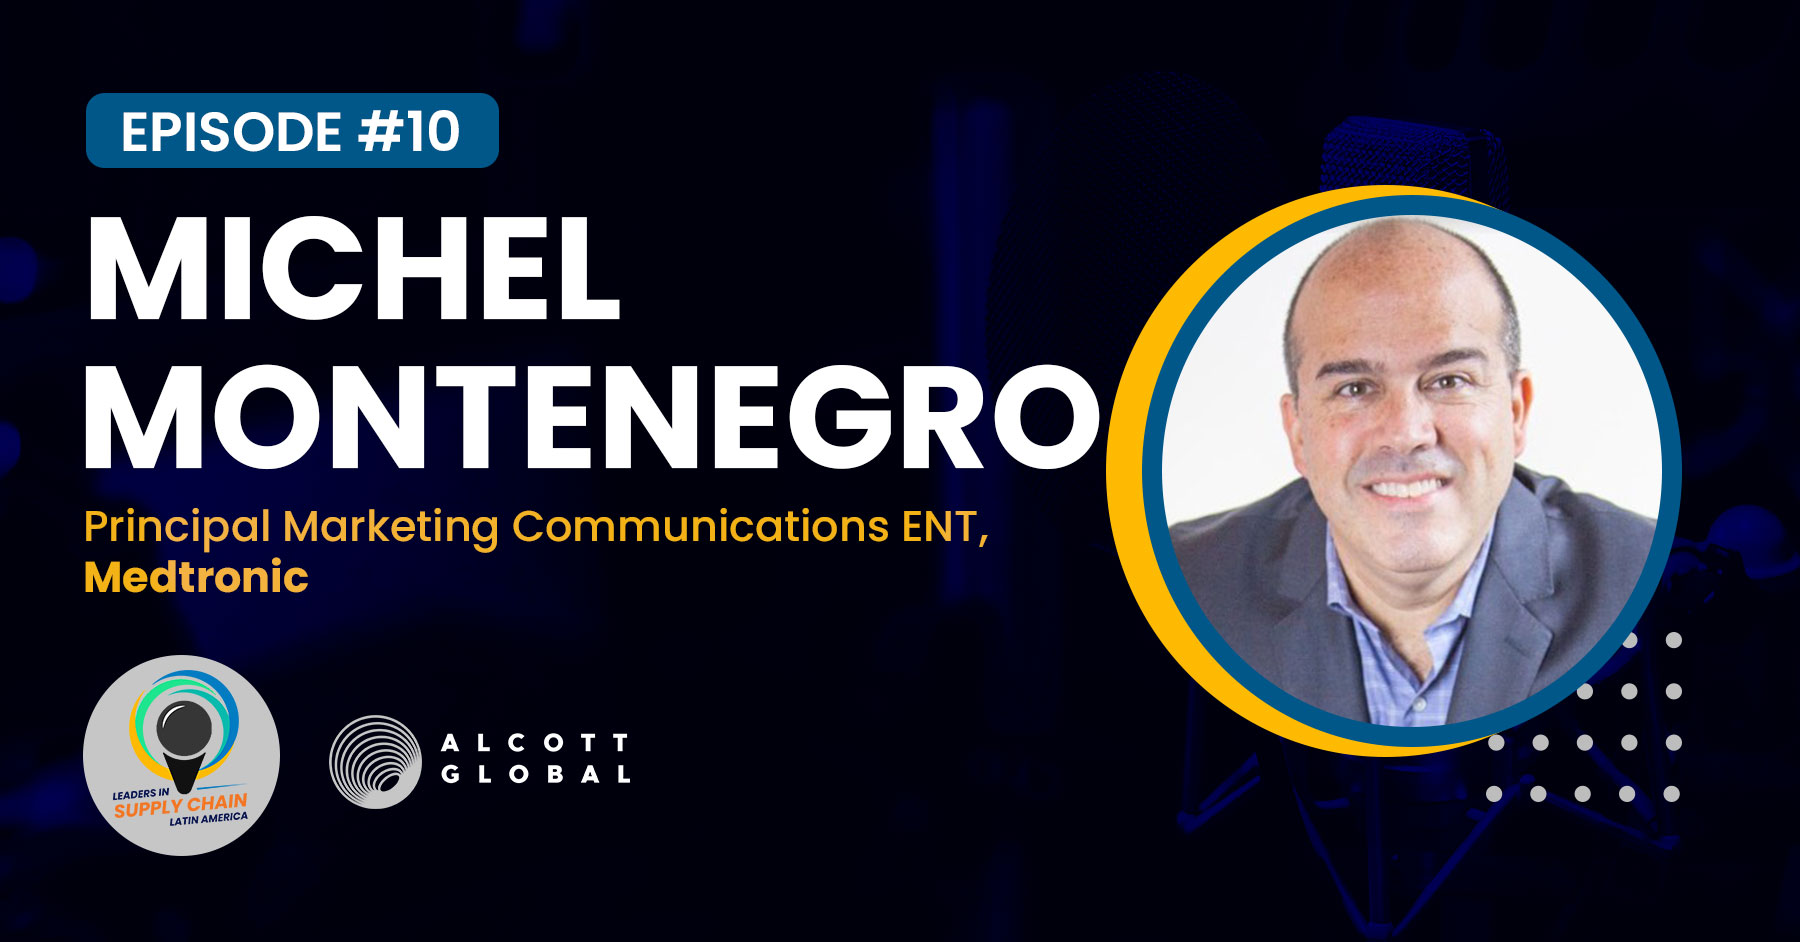 #10: Michel Montenegro, Principal Marketing Communications ENT at Medtronic Featured Image